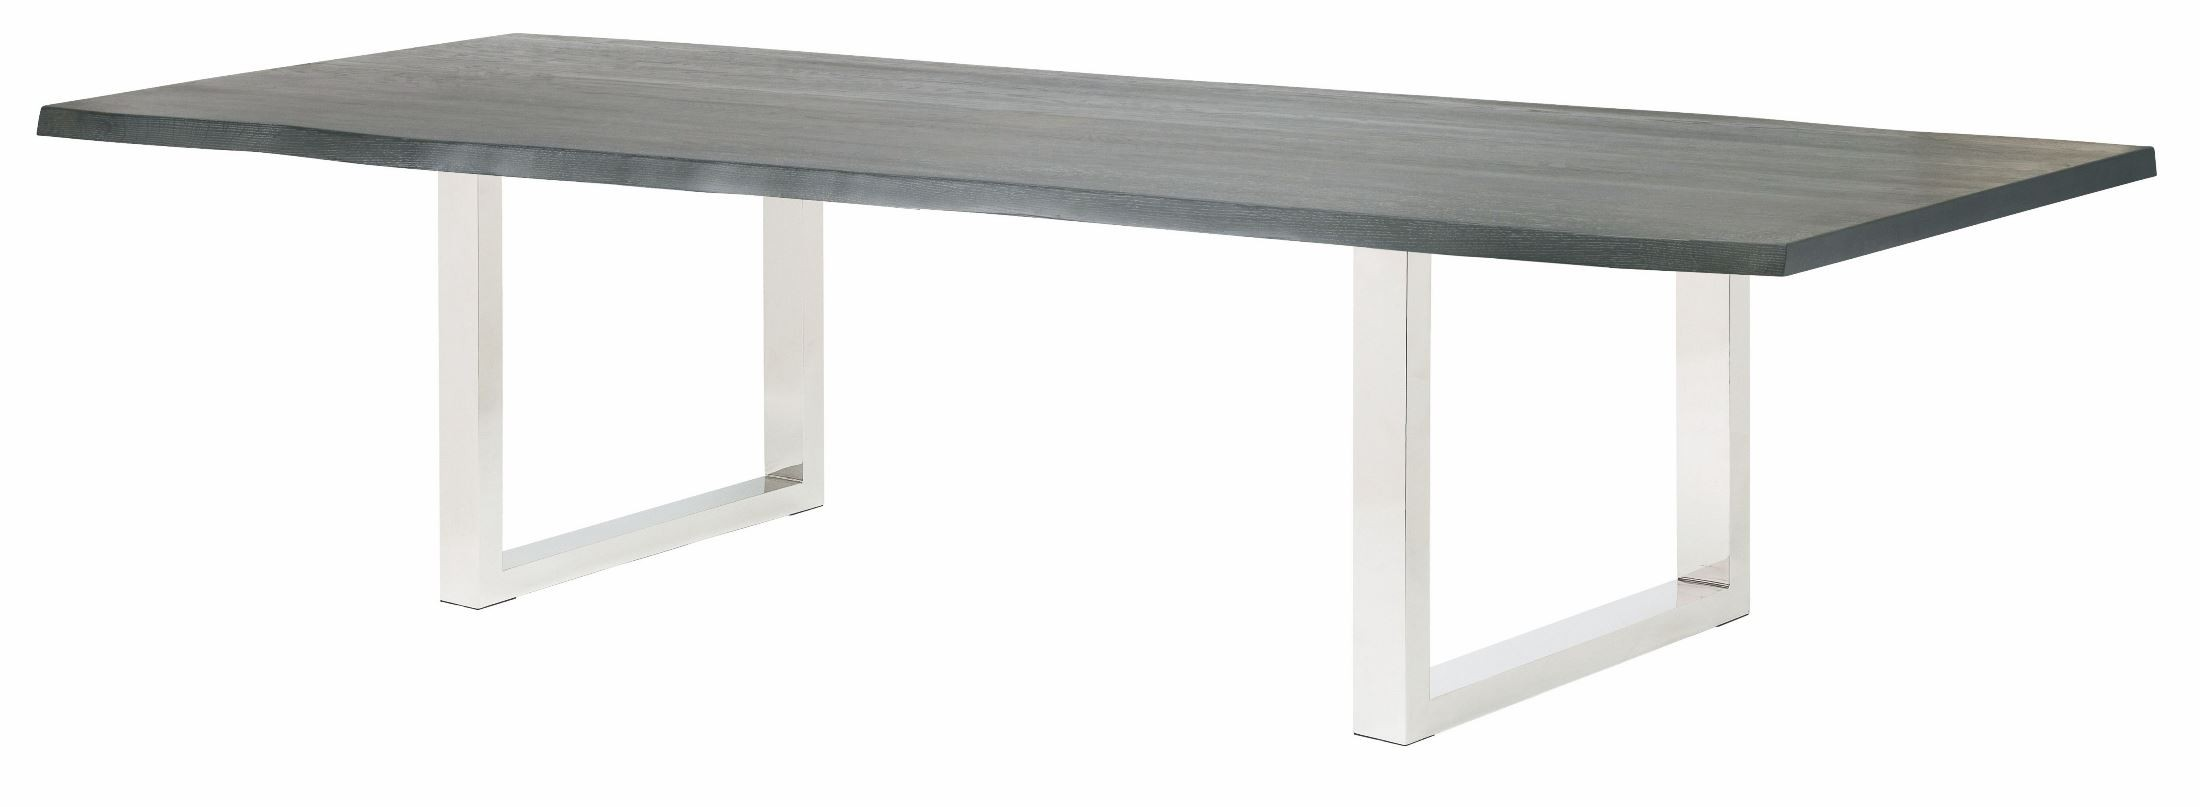 lyon 112 oxidized grey wood rectangular dining table from nuevo coleman furniture. Black Bedroom Furniture Sets. Home Design Ideas